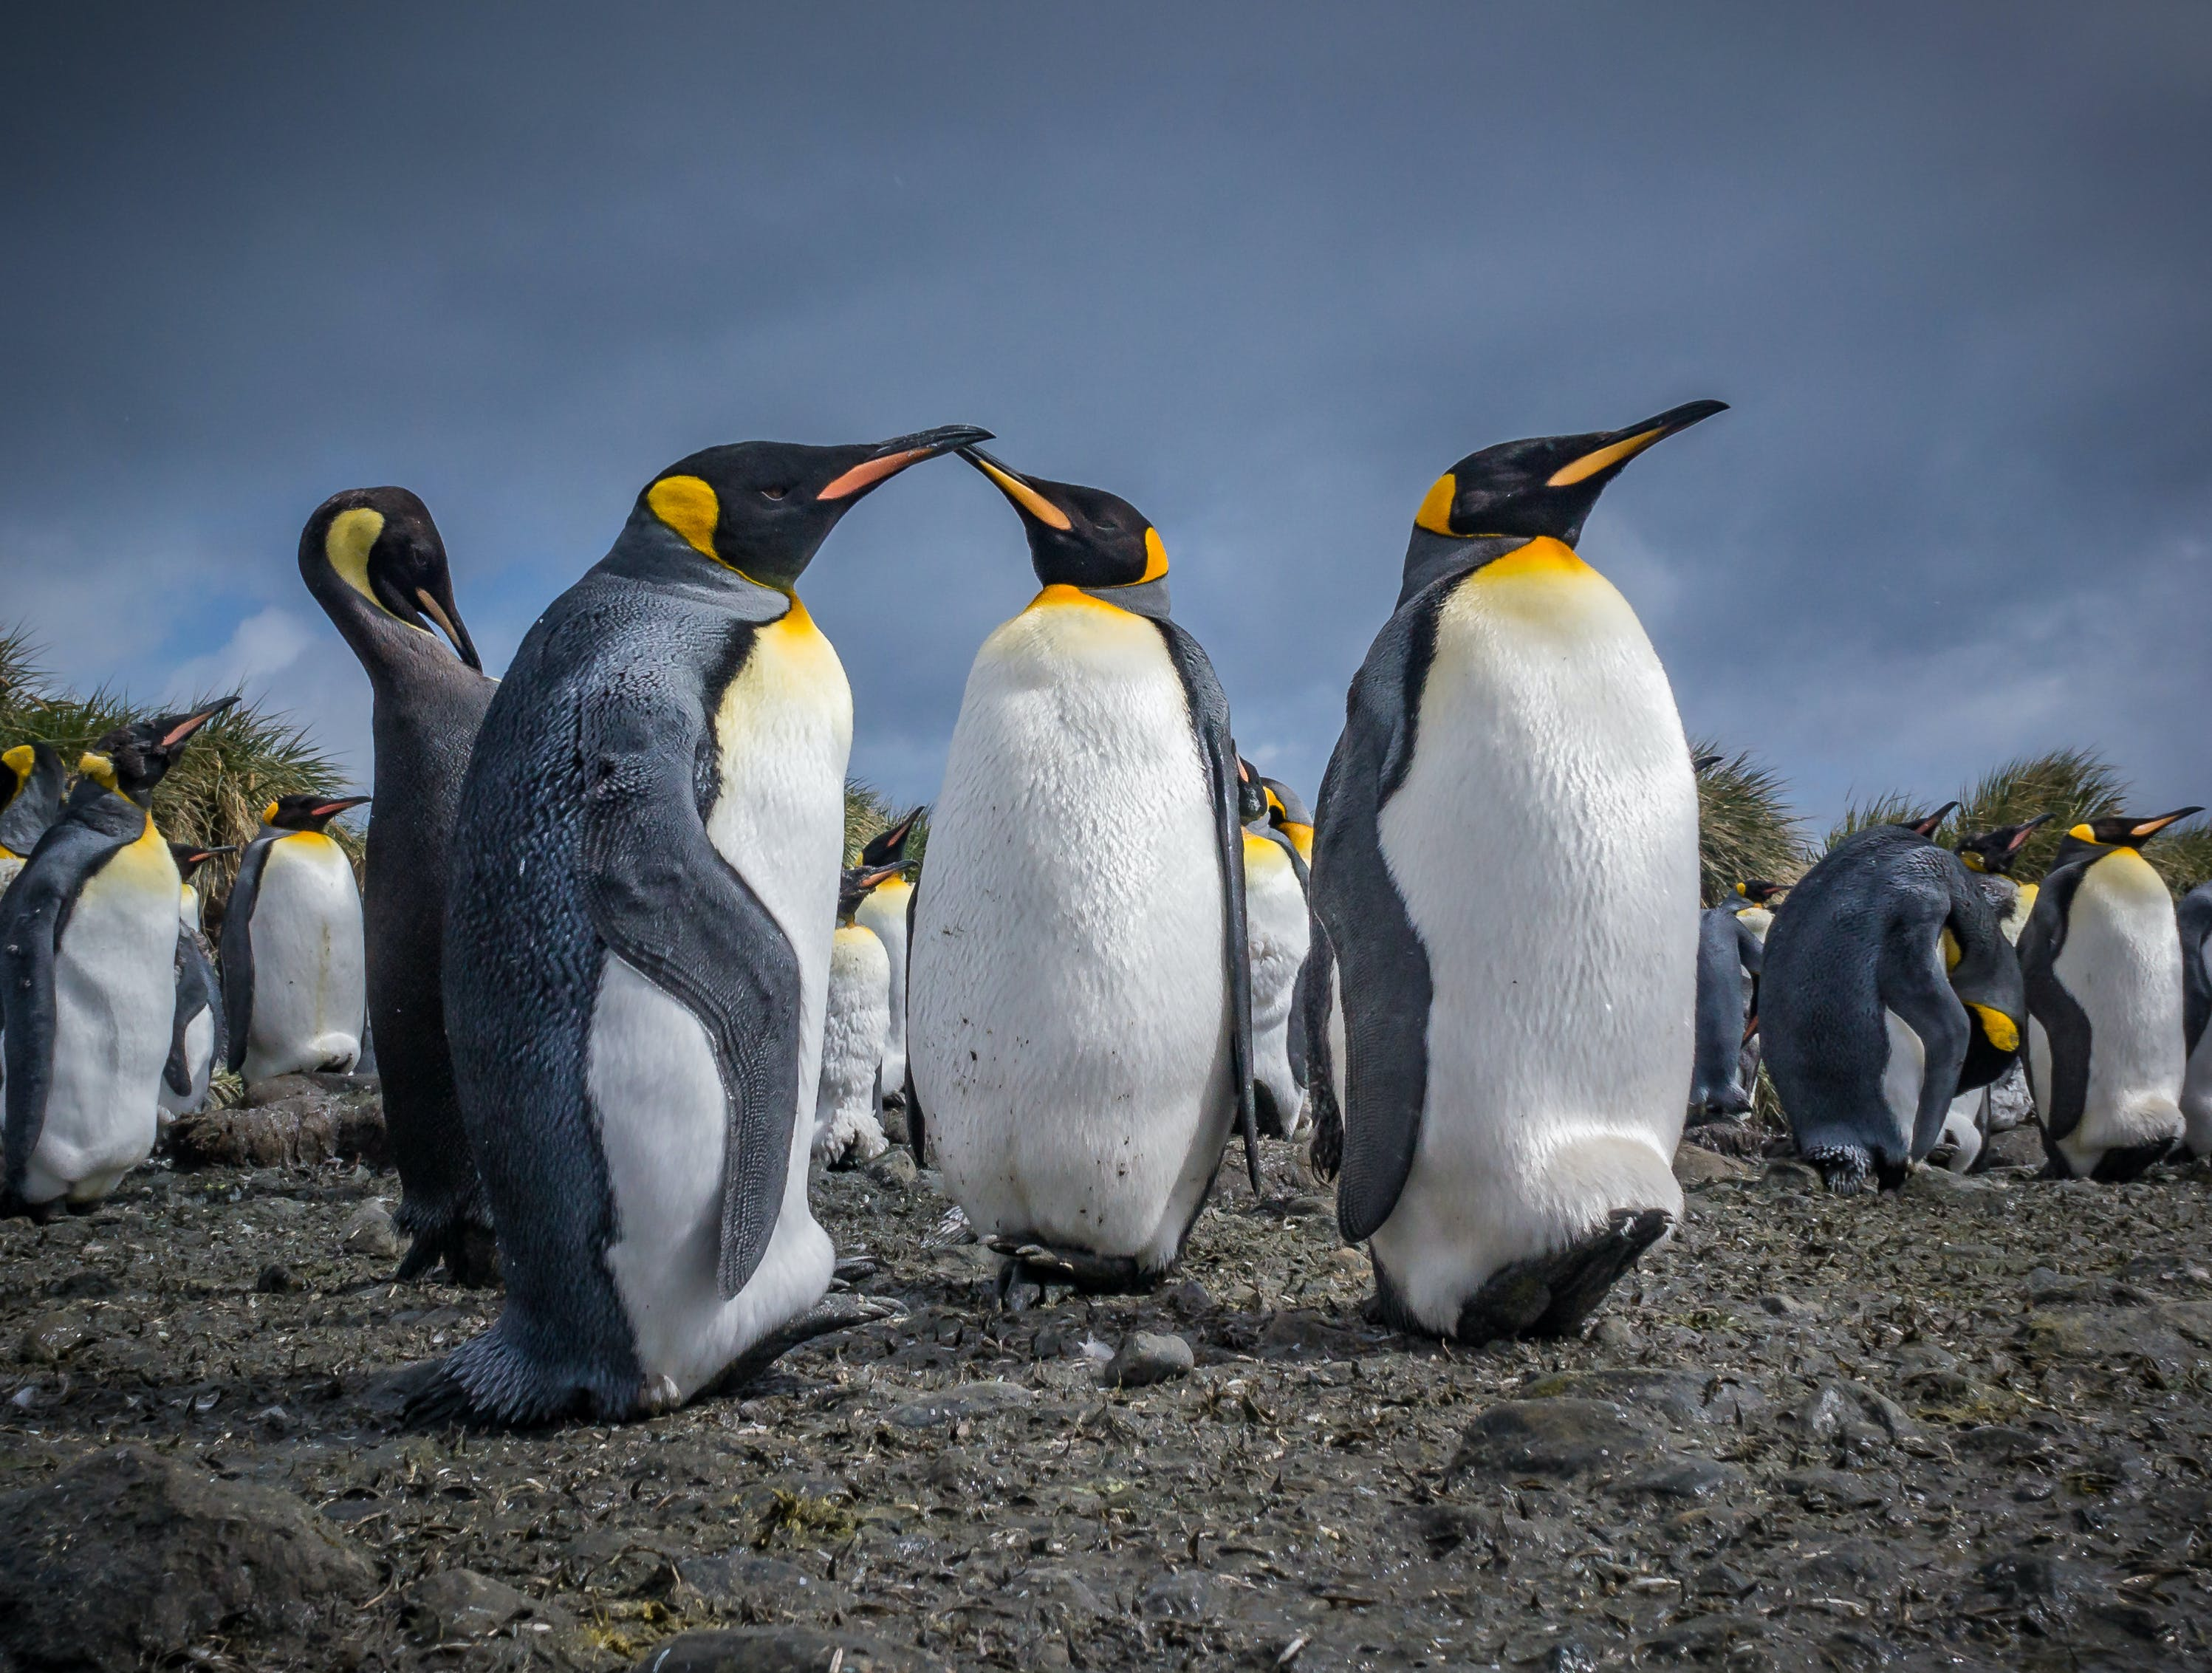 The famous Emperor Penguins of Antarctica are truly a sight to behold.